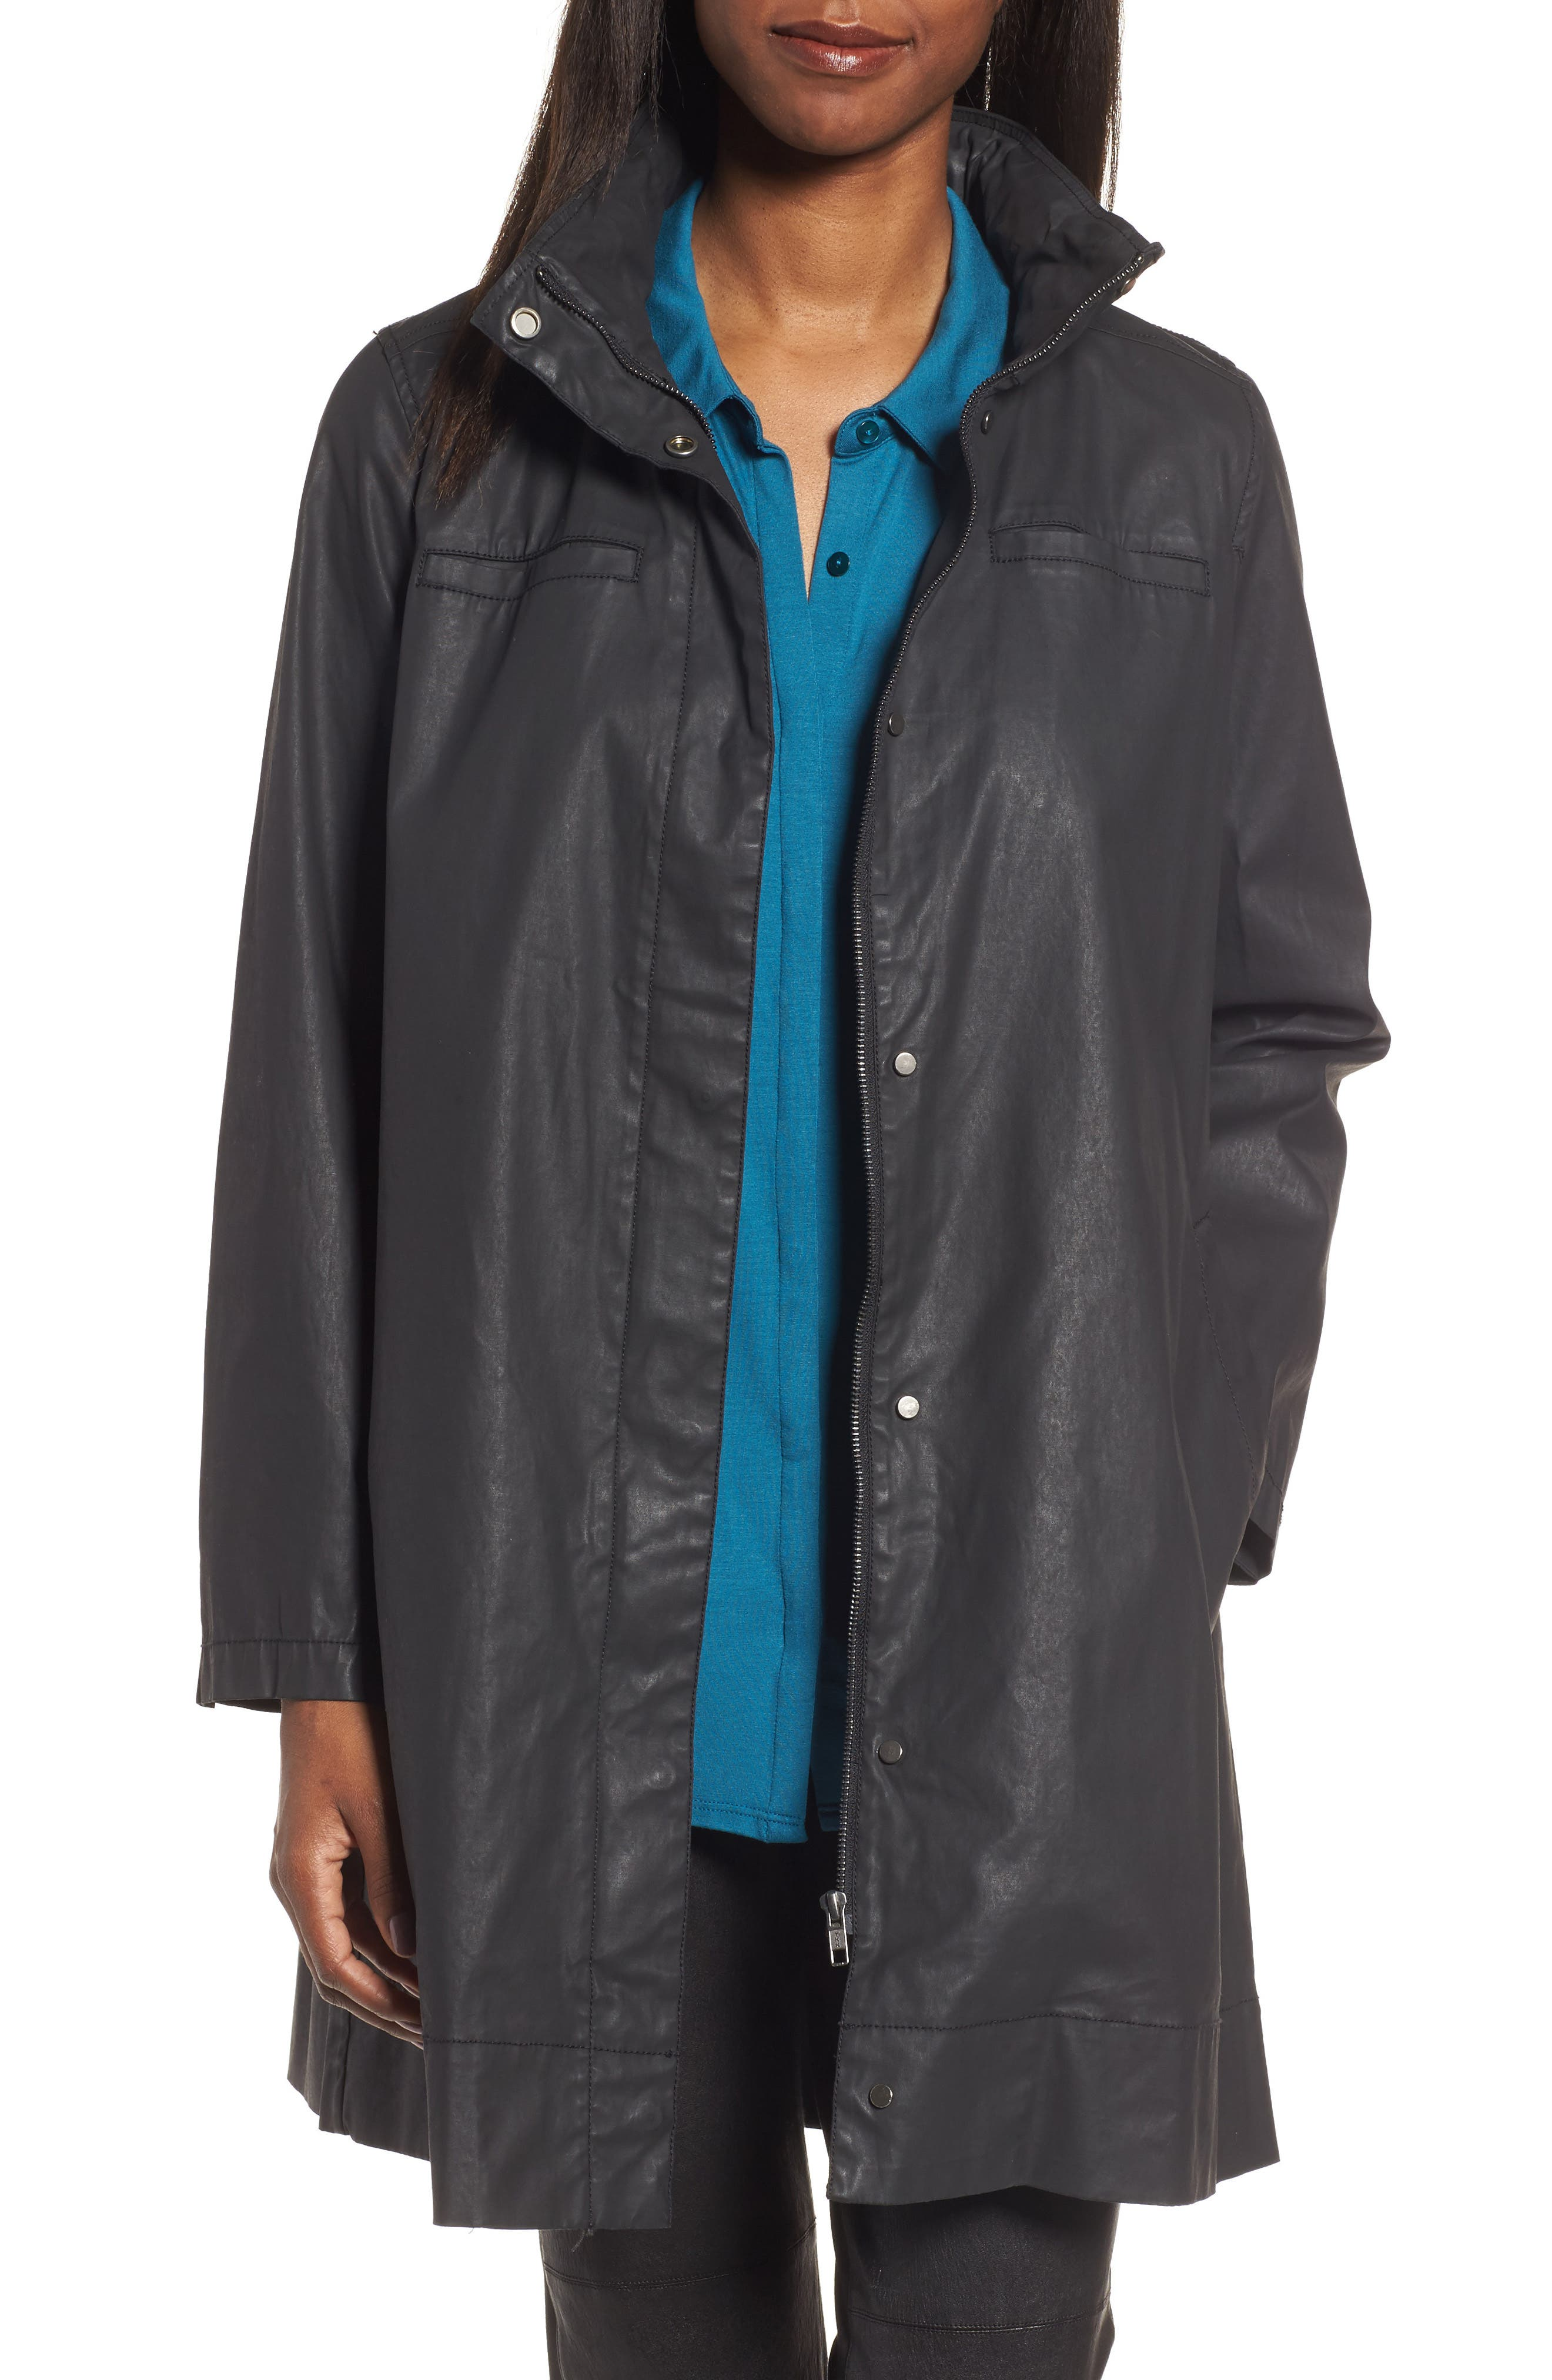 Eileen Fisher Stretch Cotton A-Line Jacket with Stowaway Hood